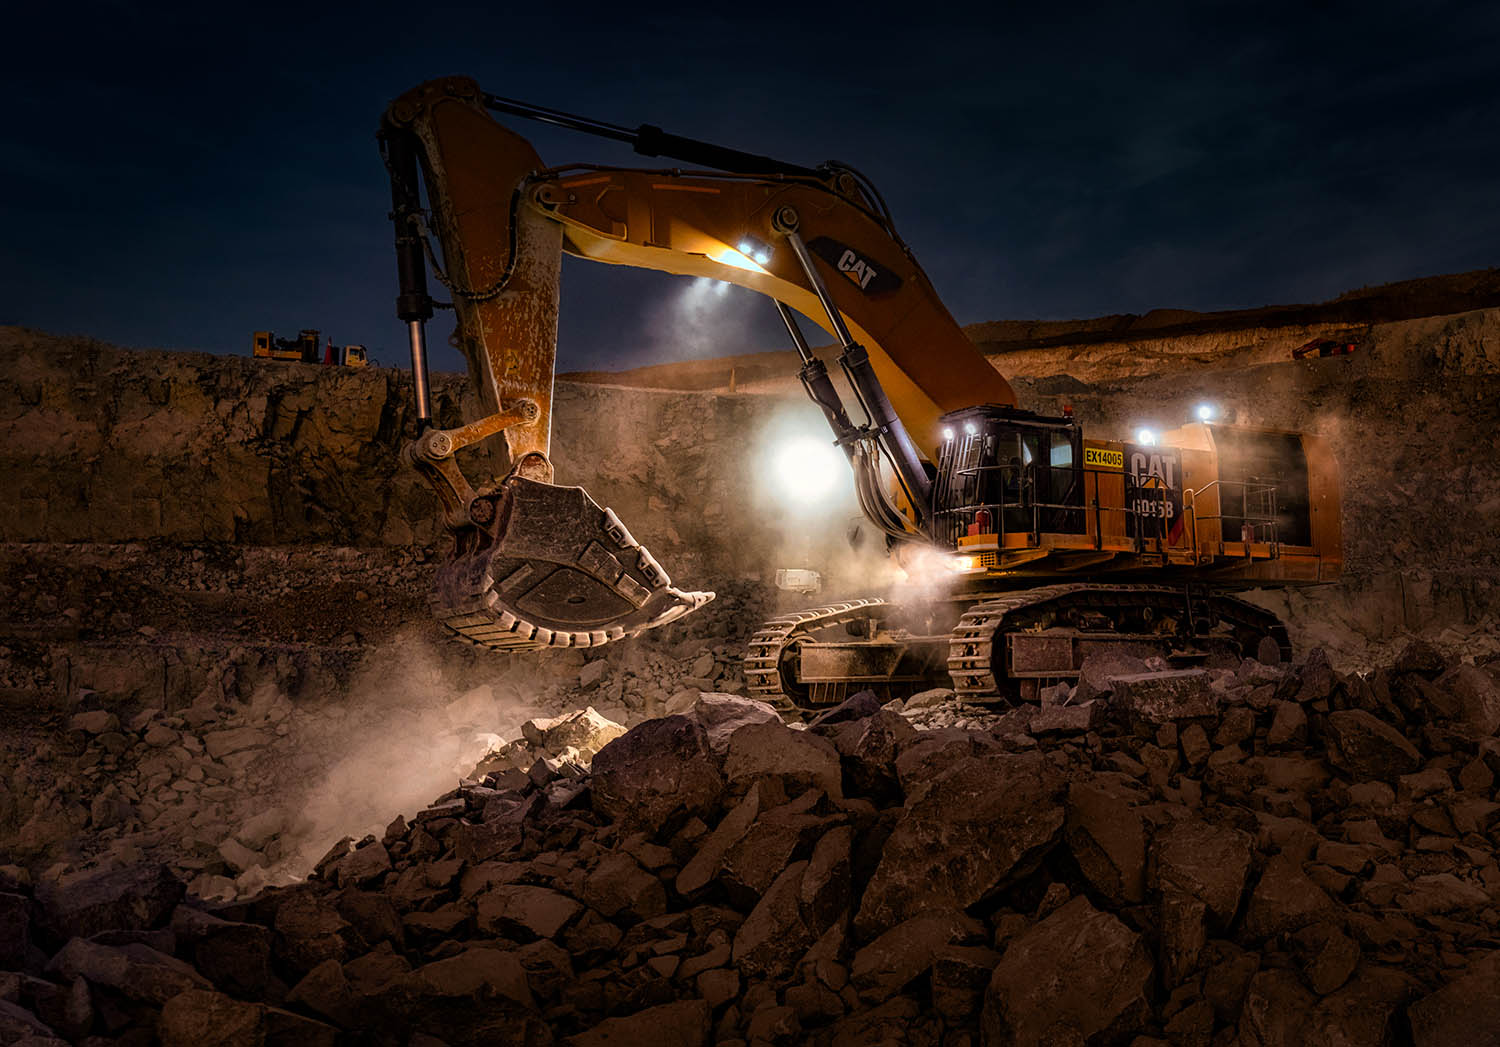 Mining excavator at work at night in an open pit mine